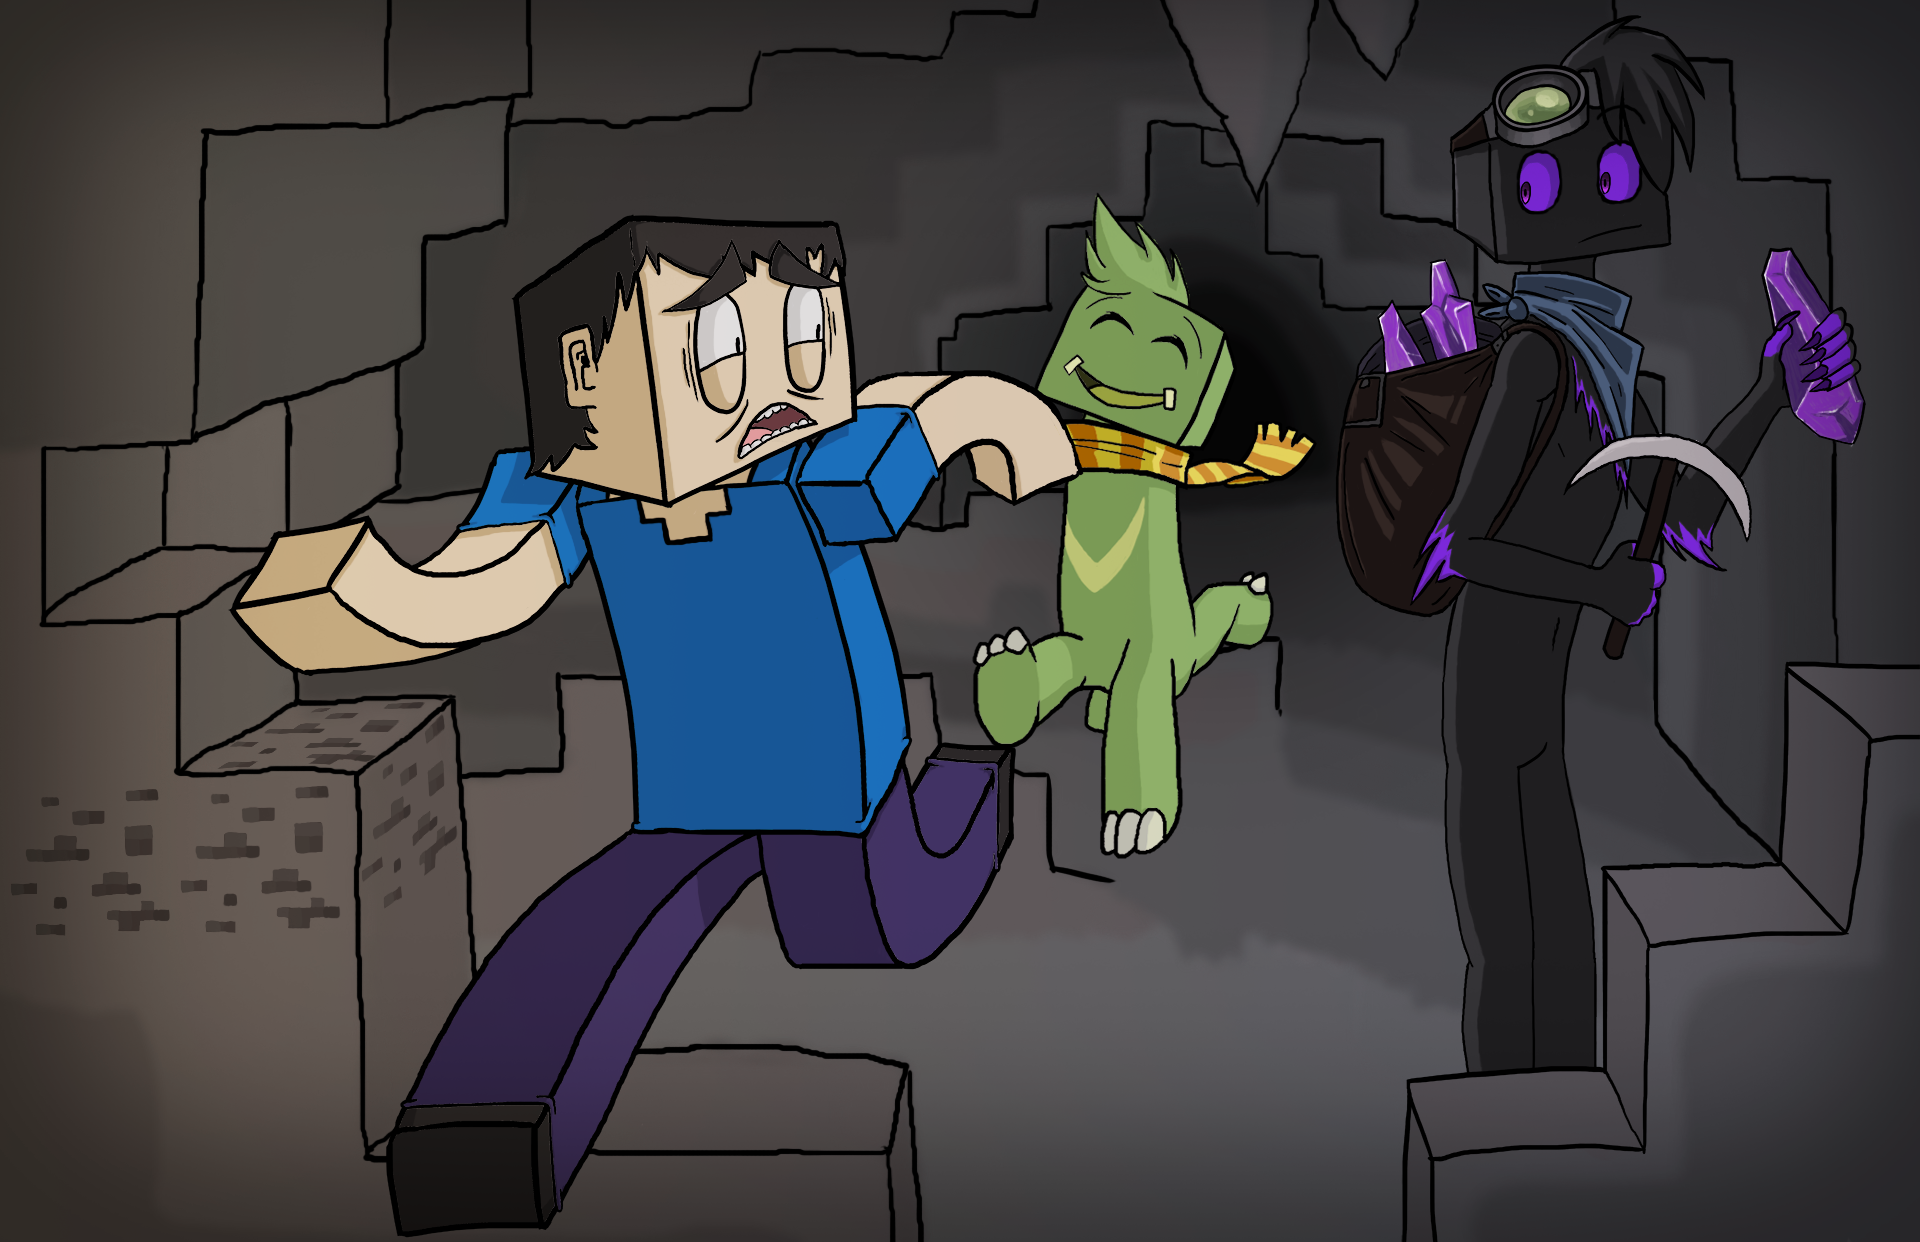 Most Inspiring Wallpaper Minecraft Cute - steve_running_away_from_cave_by_kainkiller1993-d8o0oy4  You Should Have_711857.png